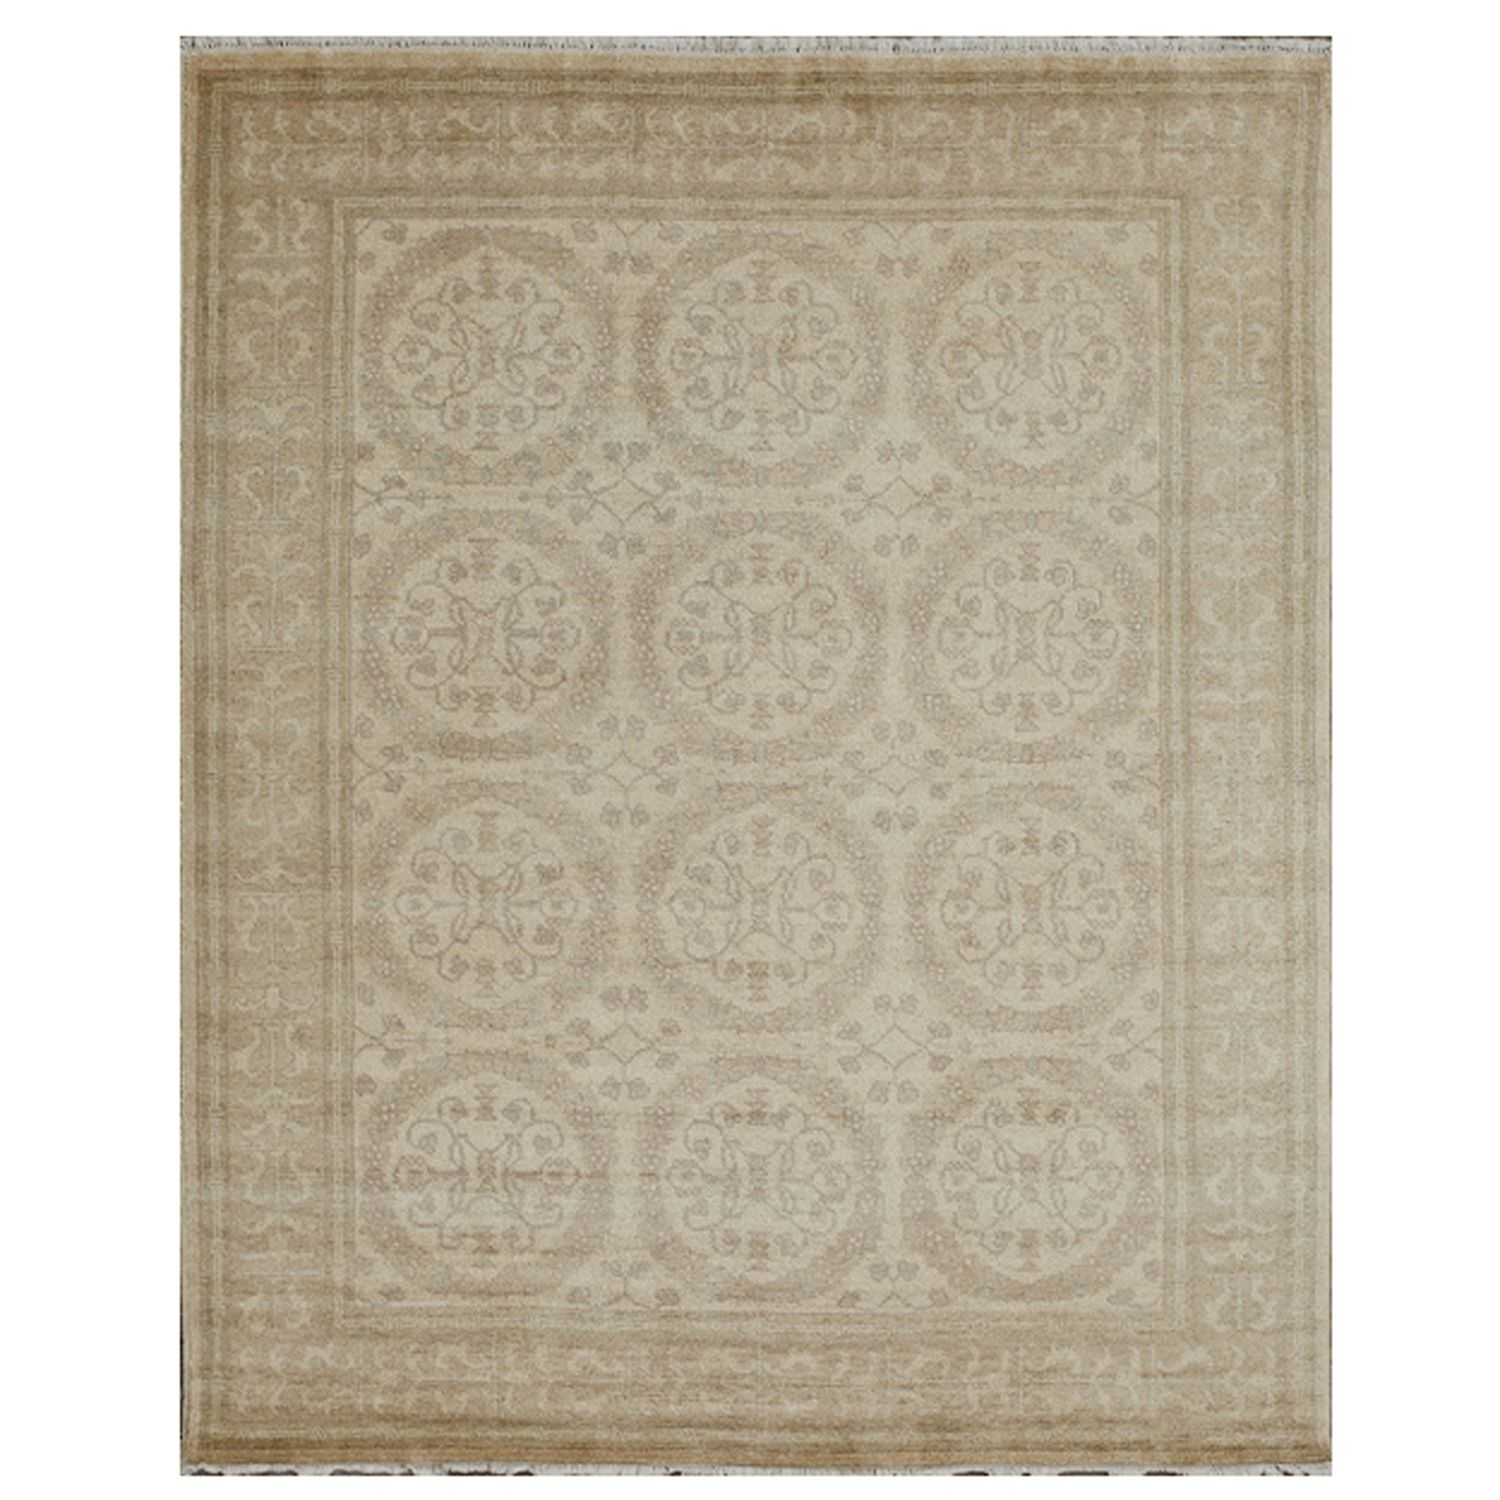 Lt P Gt Rug Size 2x3 4x6 6x9 8x10 9x12 10x14 12x15 Lt X2f P Gt Lt P Gt Oushaks Are Made From The Finest Importe Area Rugs Rug Shapes Cream Area Rug